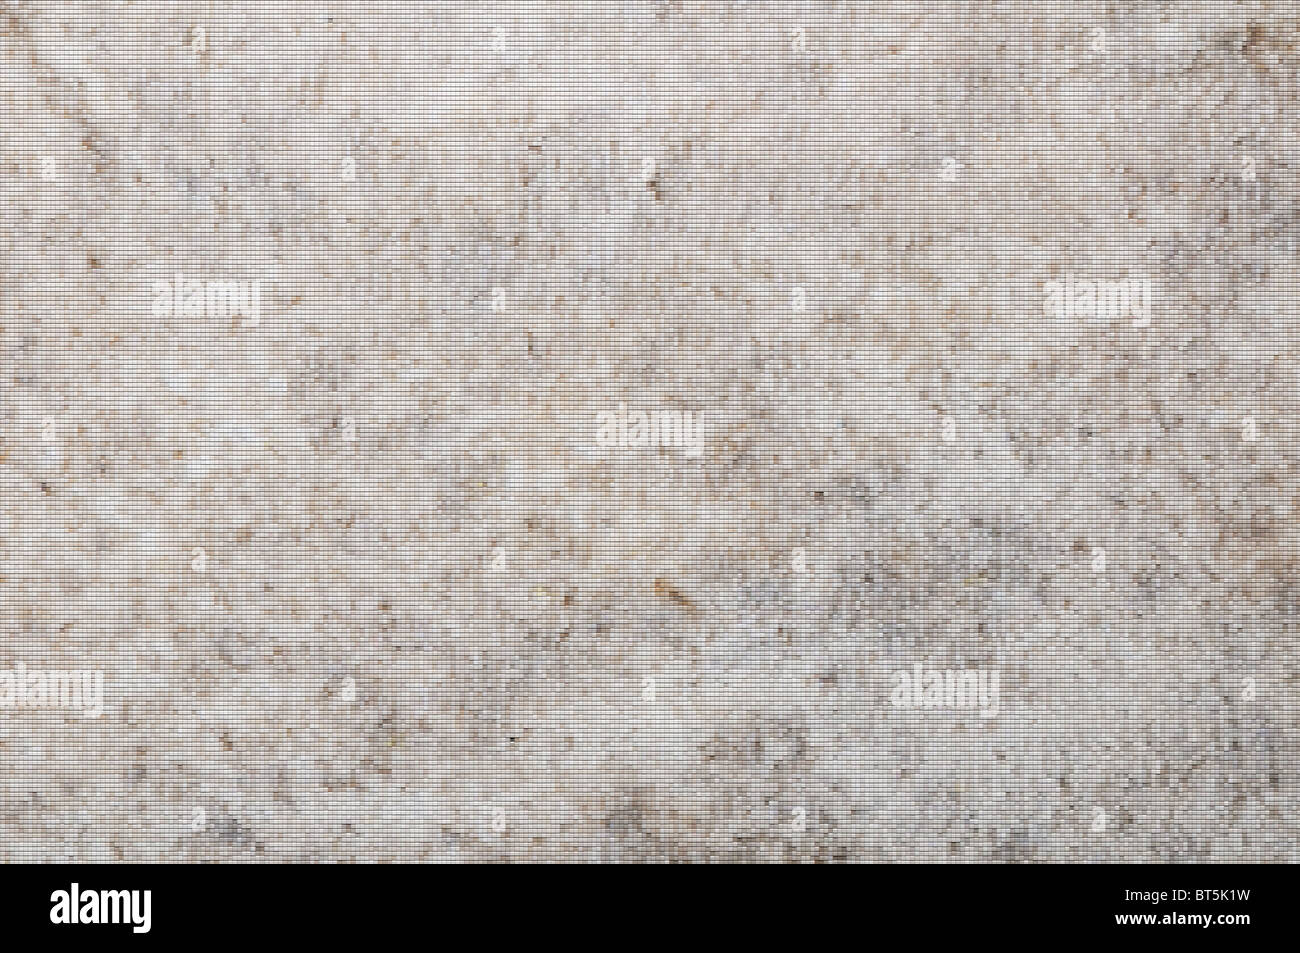 Mosaic made of patches in soft white, grey and brown tones. - Stock Image